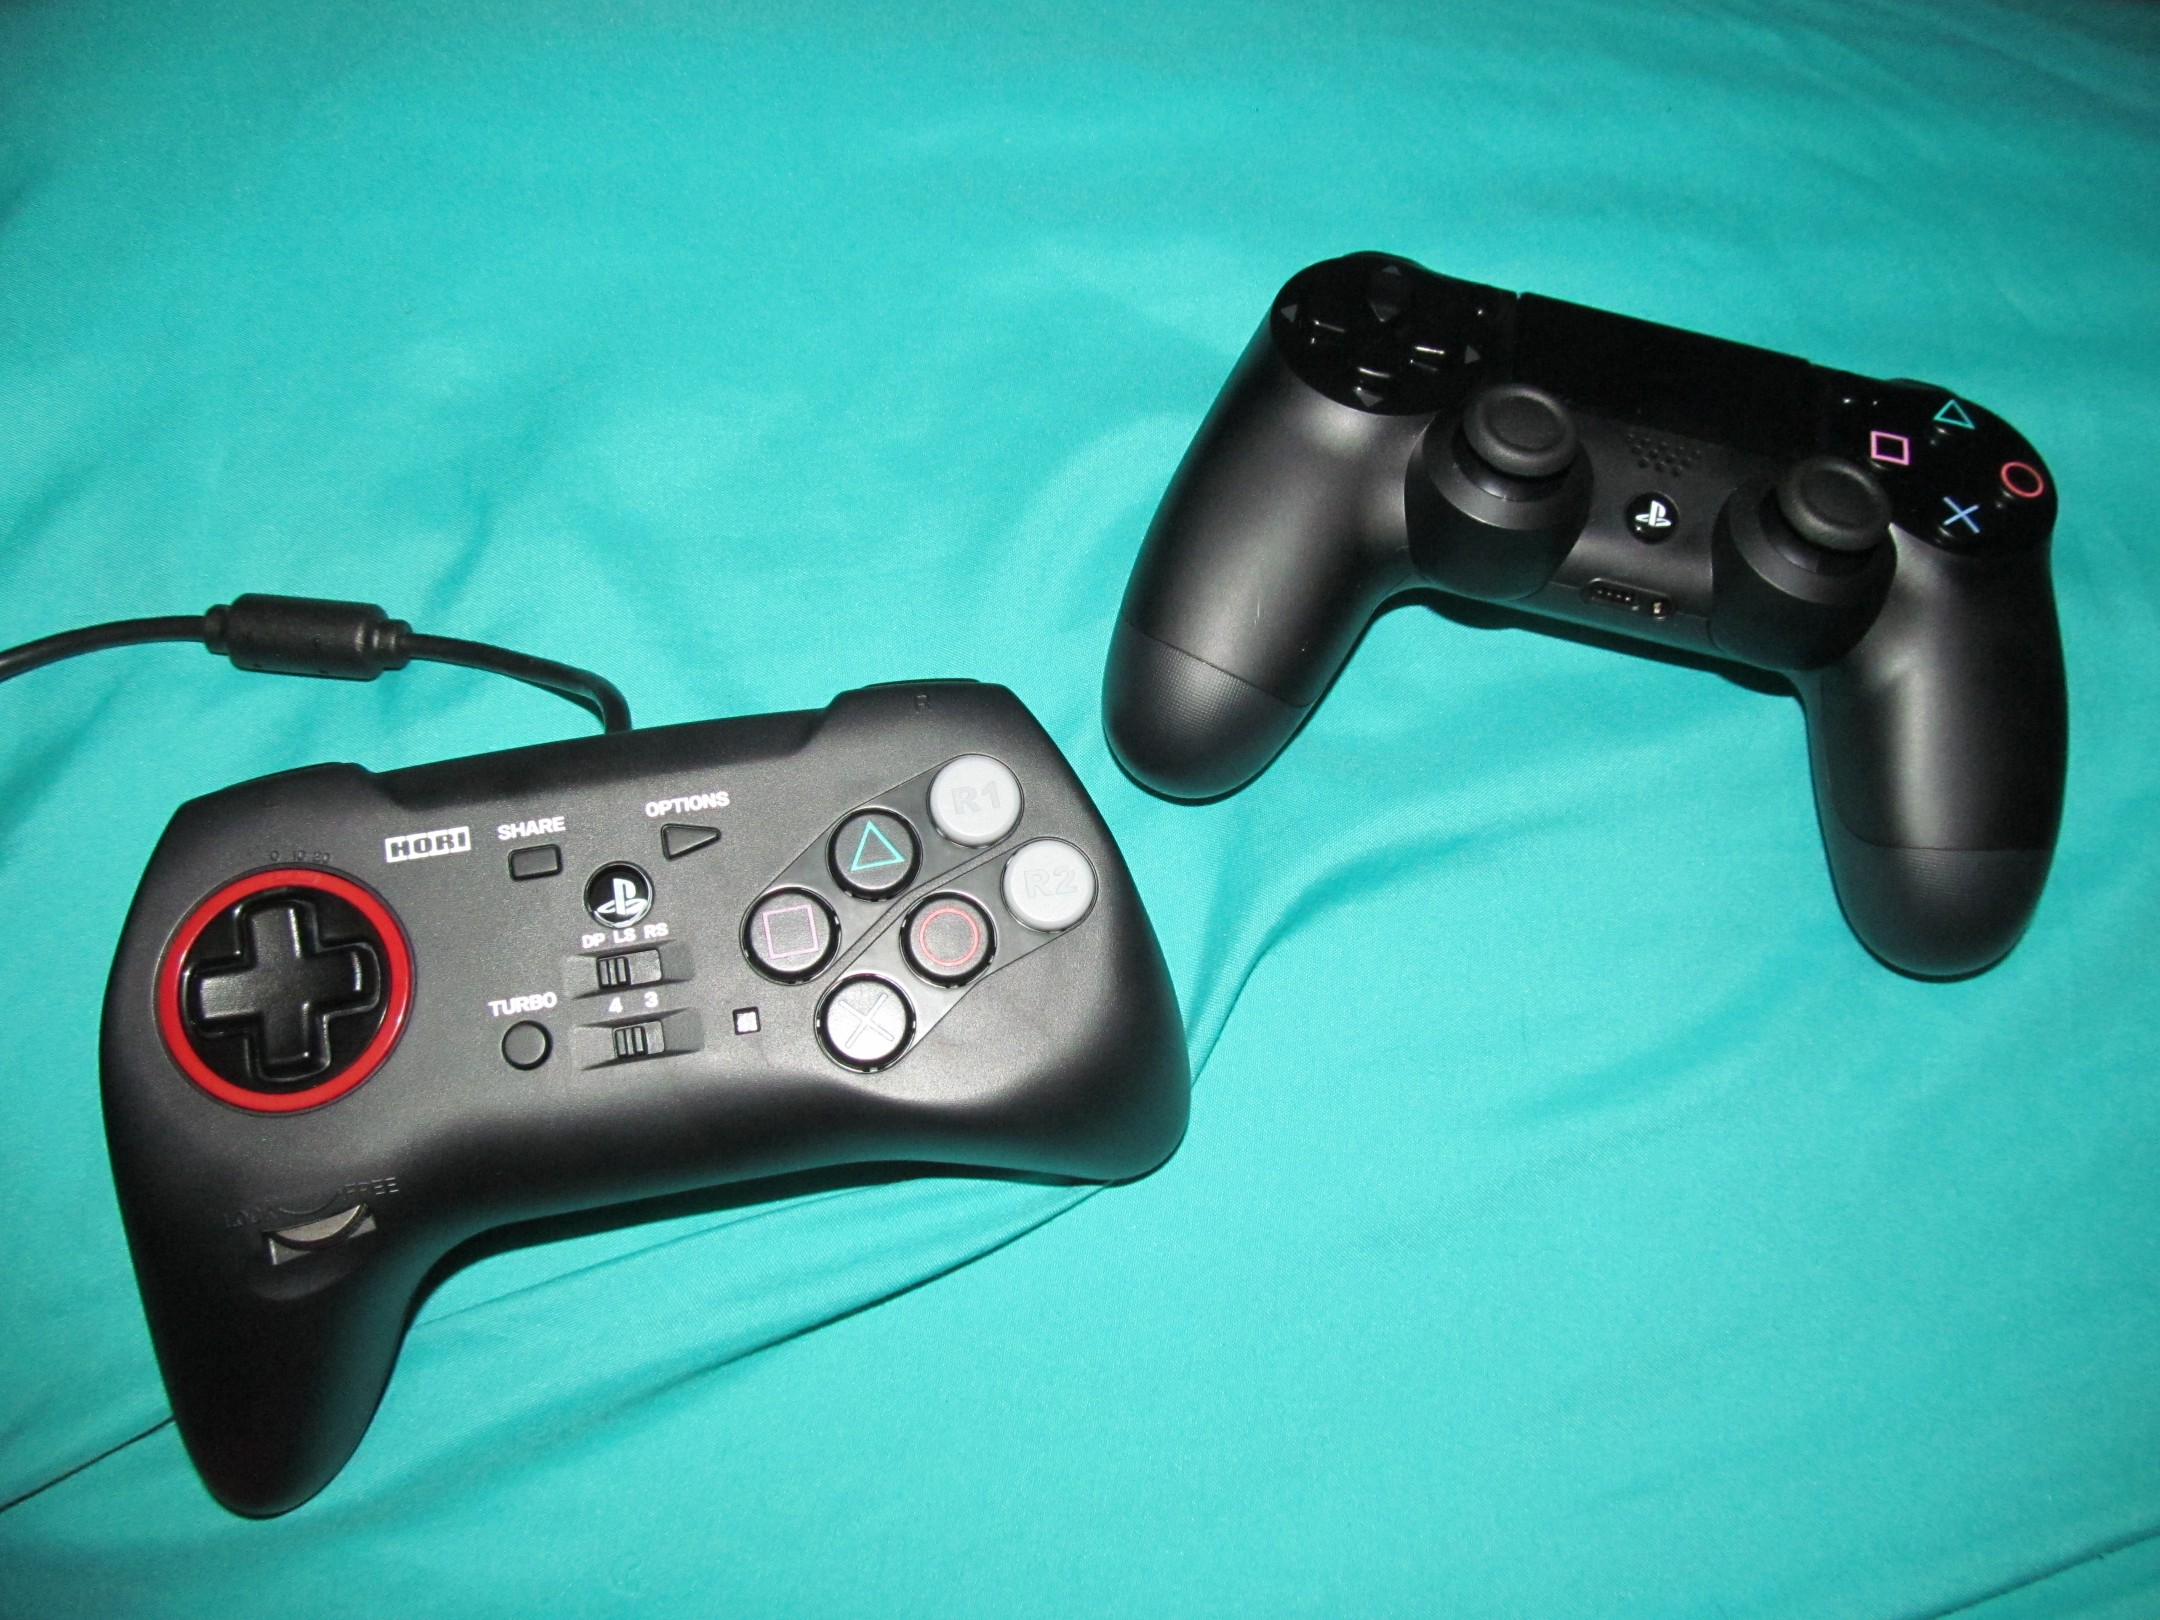 Controller Review Hori Fighting Commander 4 For Ps3 Ps4 Pc Gamecube Wiring Diagram Right Stick Img 1124